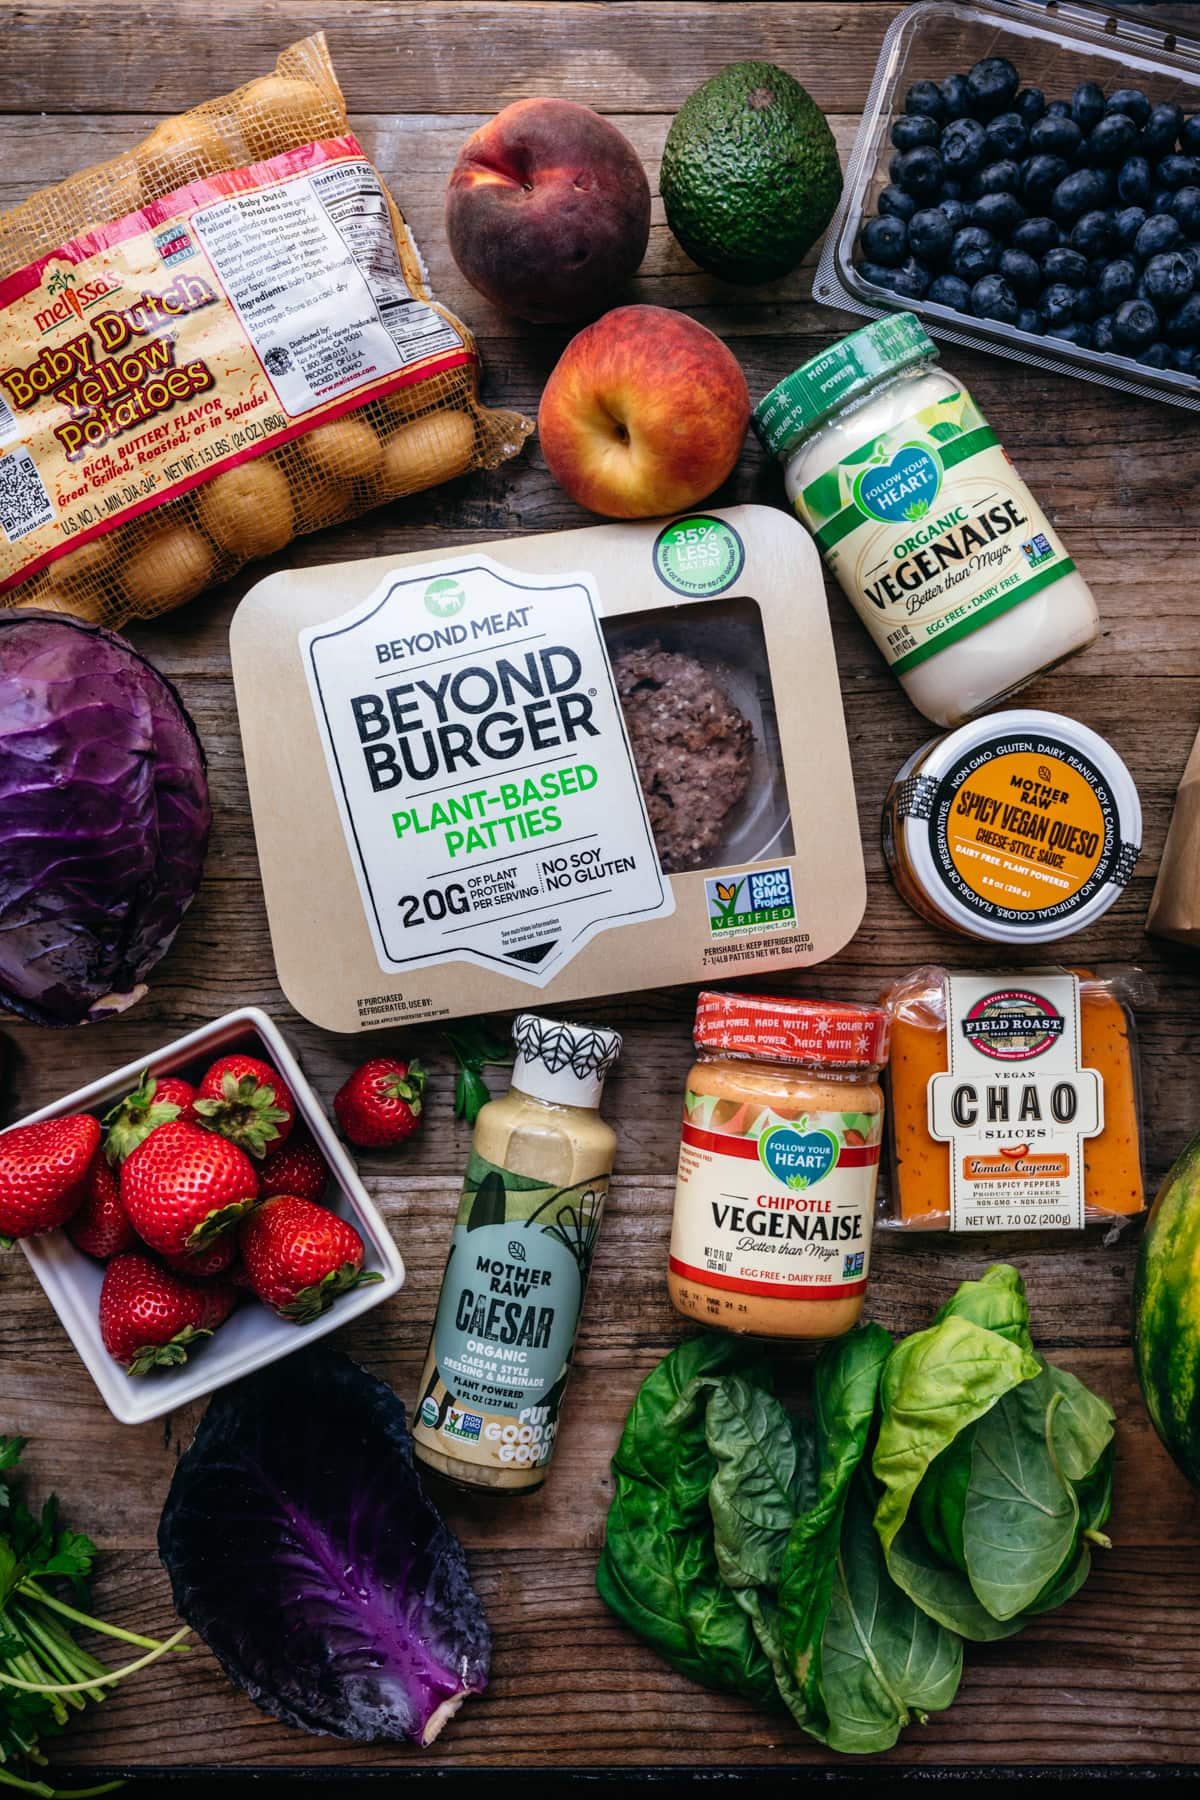 overhead view of vegan summer bbq ingredients and products on wood table.